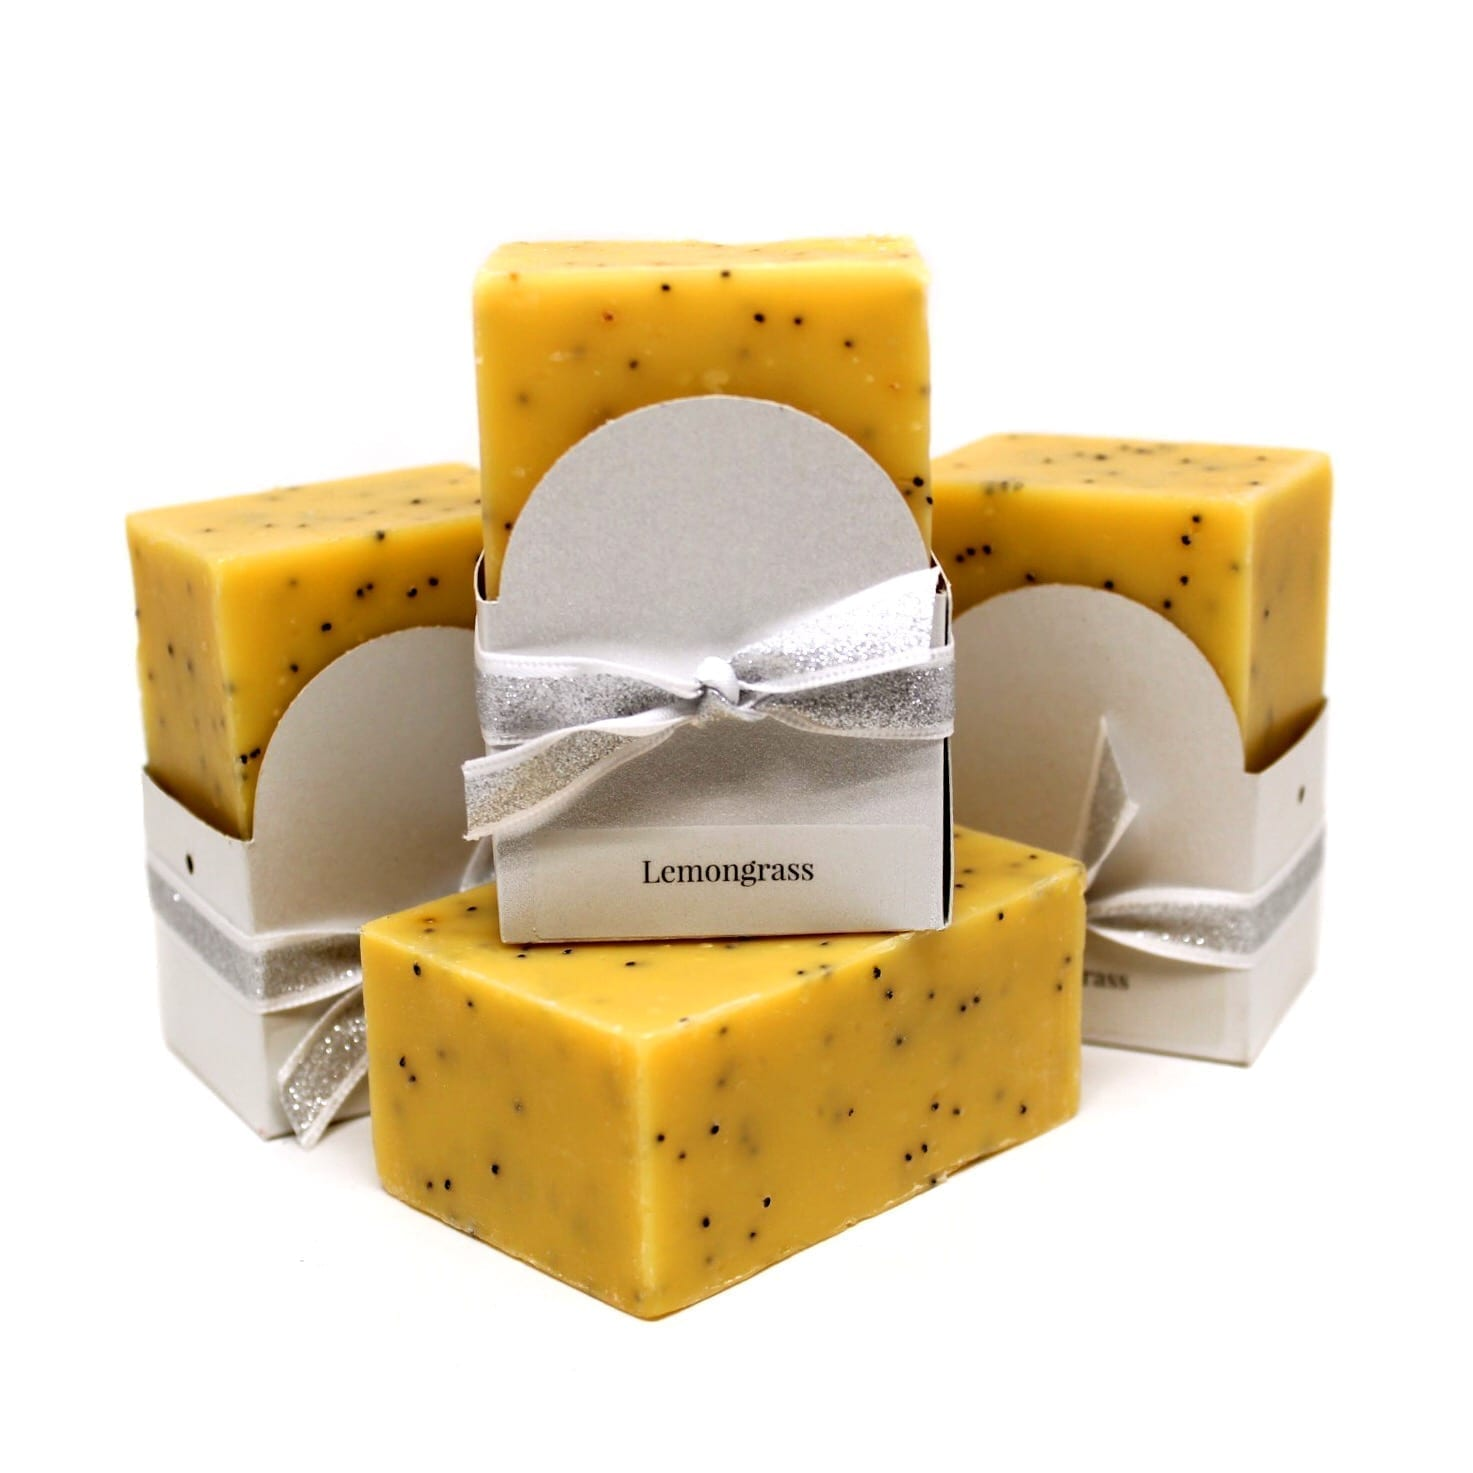 Lemongrass Vegan Soap